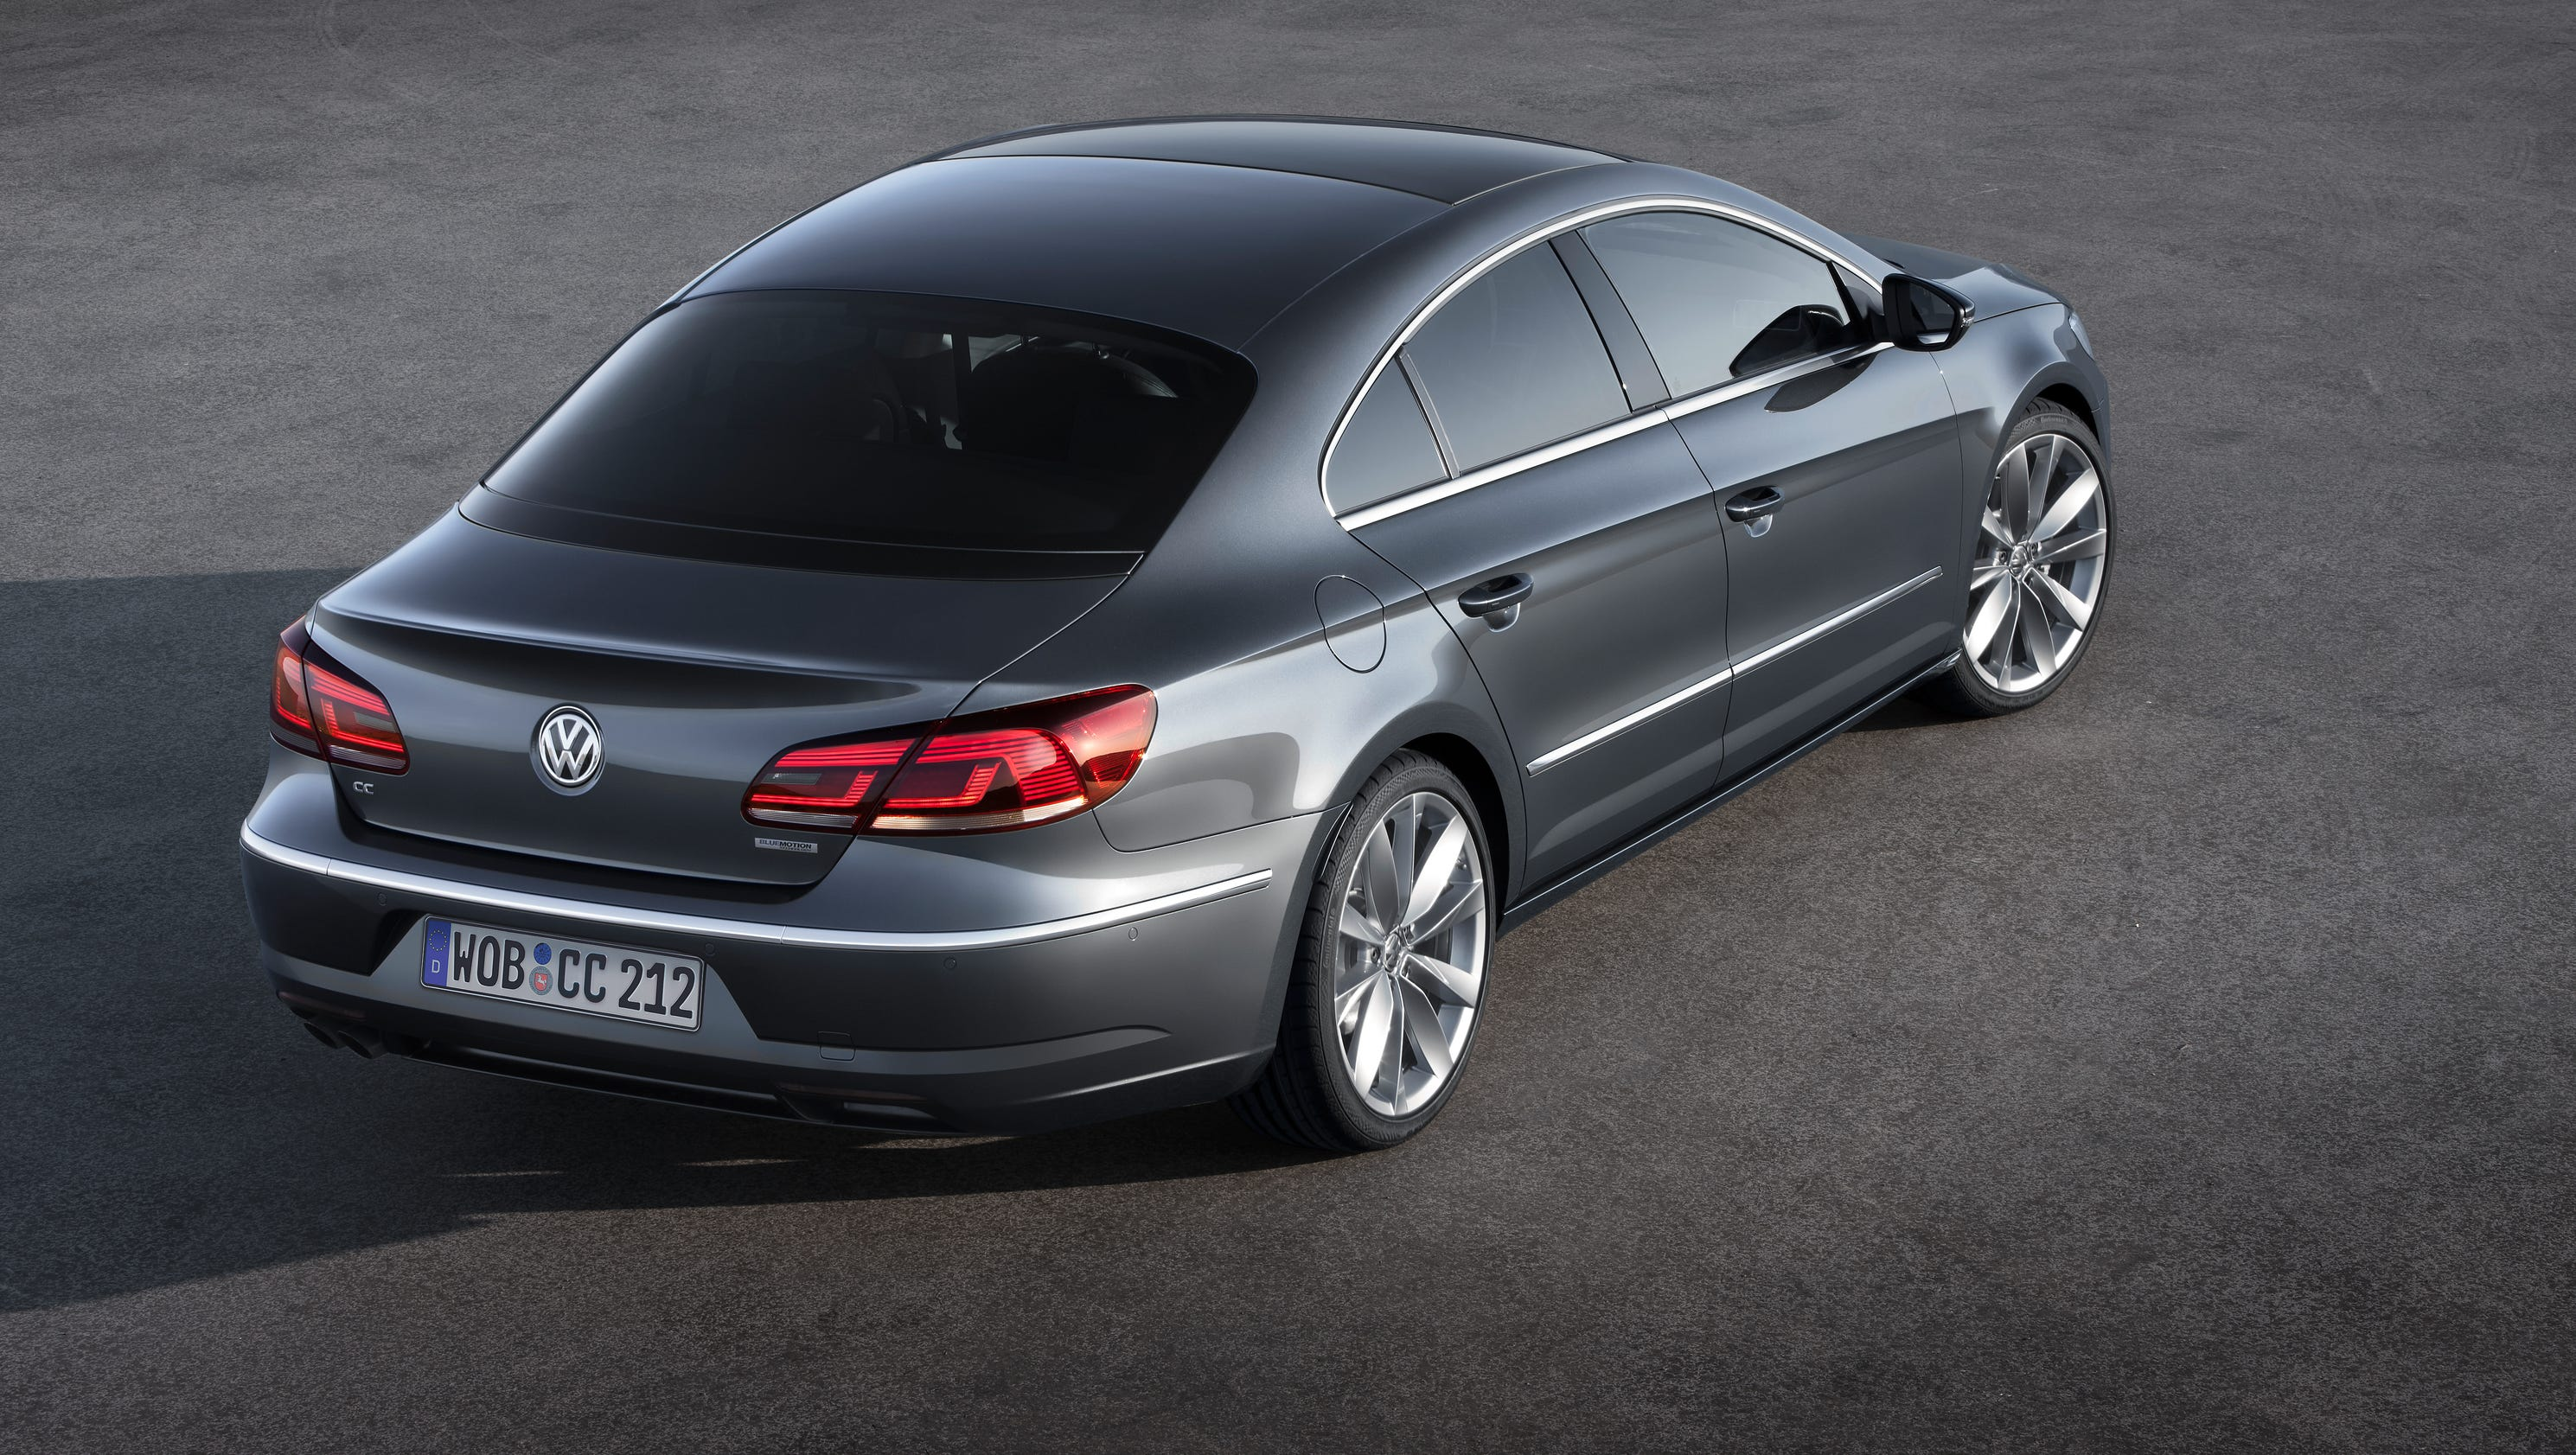 just recently i vw image own sport t a volkswagen purchased cc